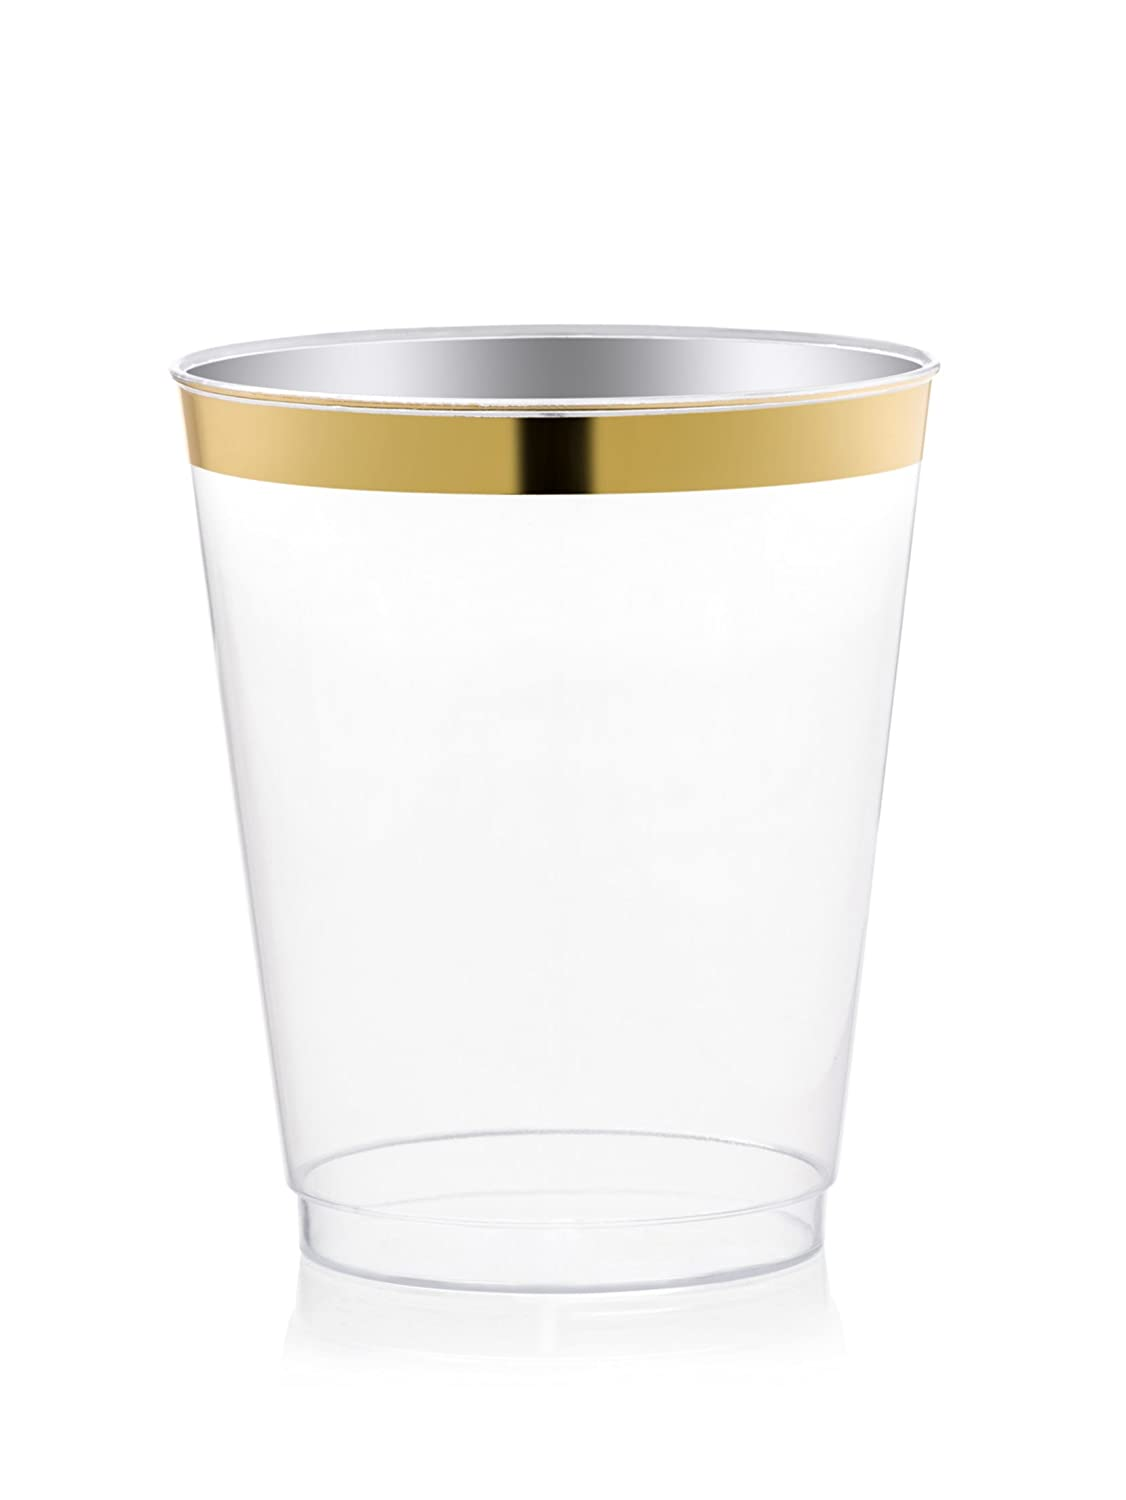 DRINKET Gold Plastic Cups 8 oz Clear Plastic Cups / Tumblers Fancy Plastic Wedding Cups With Gold Rim 50 Ct Disposable For Party Holiday and Occasions SUPER VALUE PACK